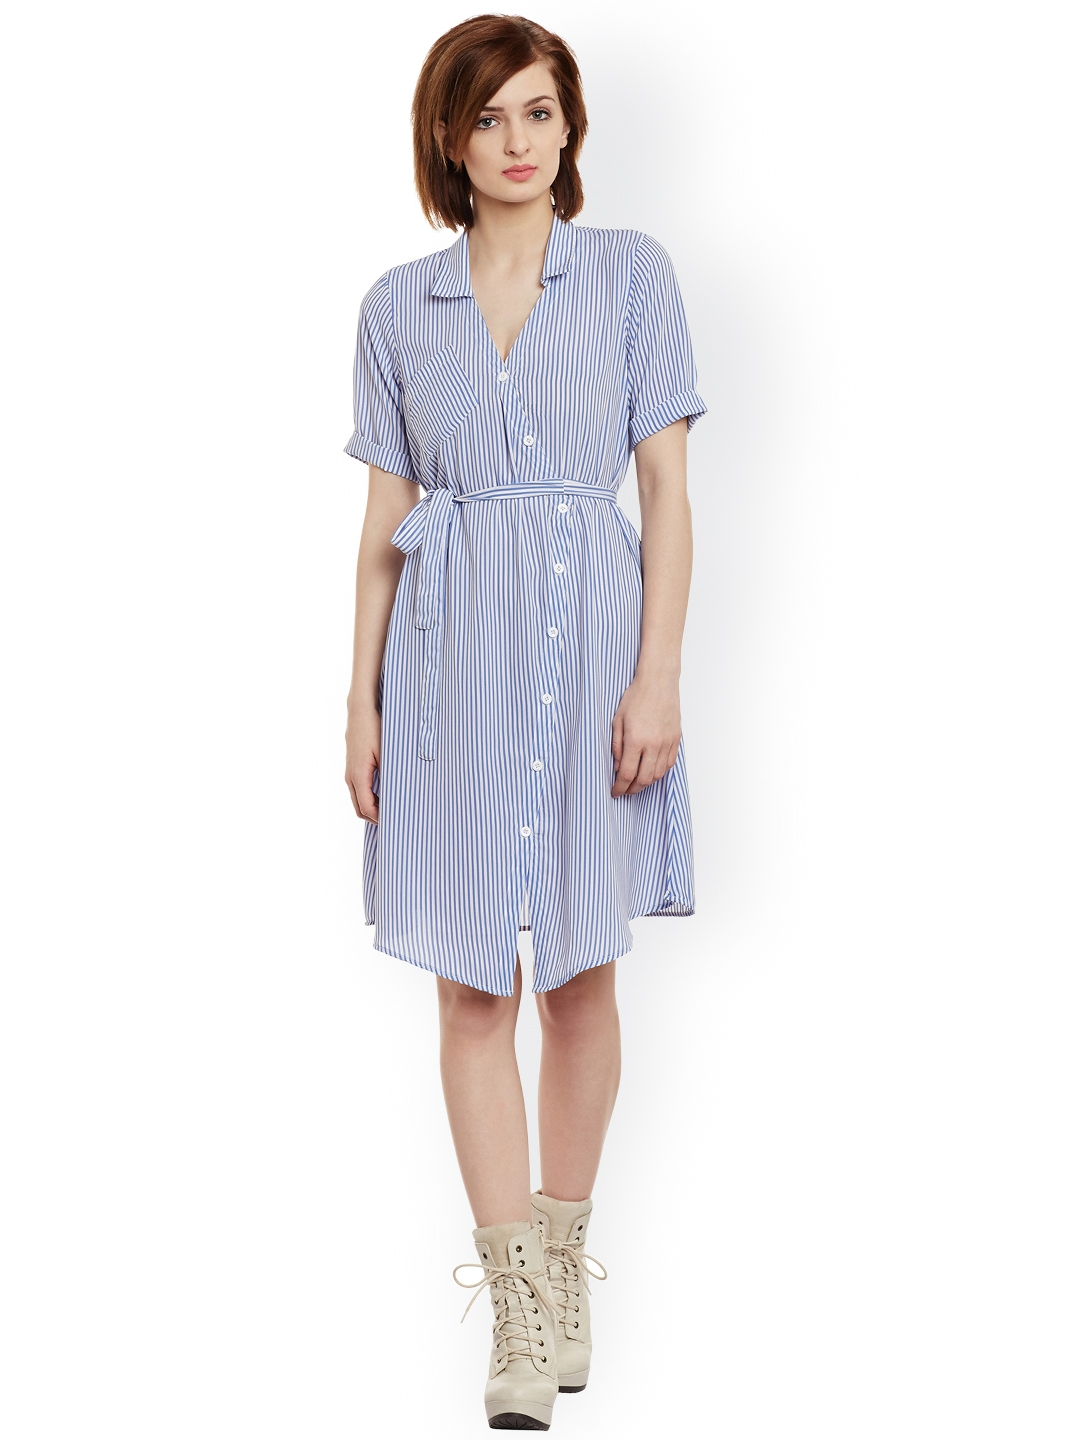 d8a5104ca0be Buy THE SILHOUETTE STORE Women Blue   White Striped Shirt Dress ...